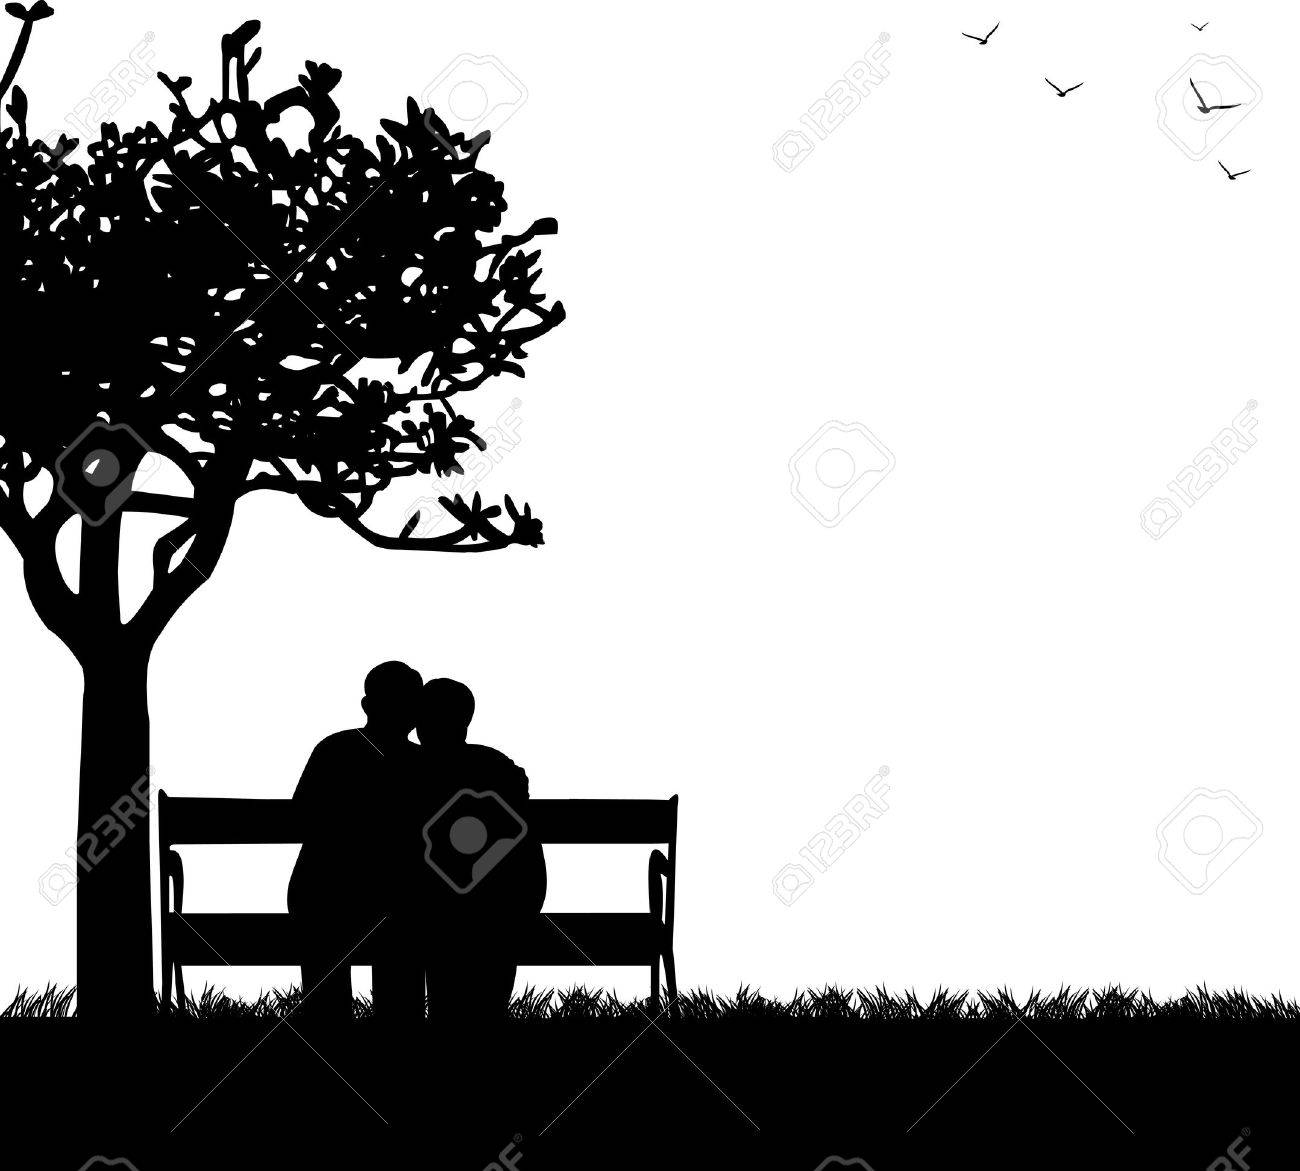 Lovely retired elderly couple sitting on bench in park, one in the series of similar images silhouette - 20482249